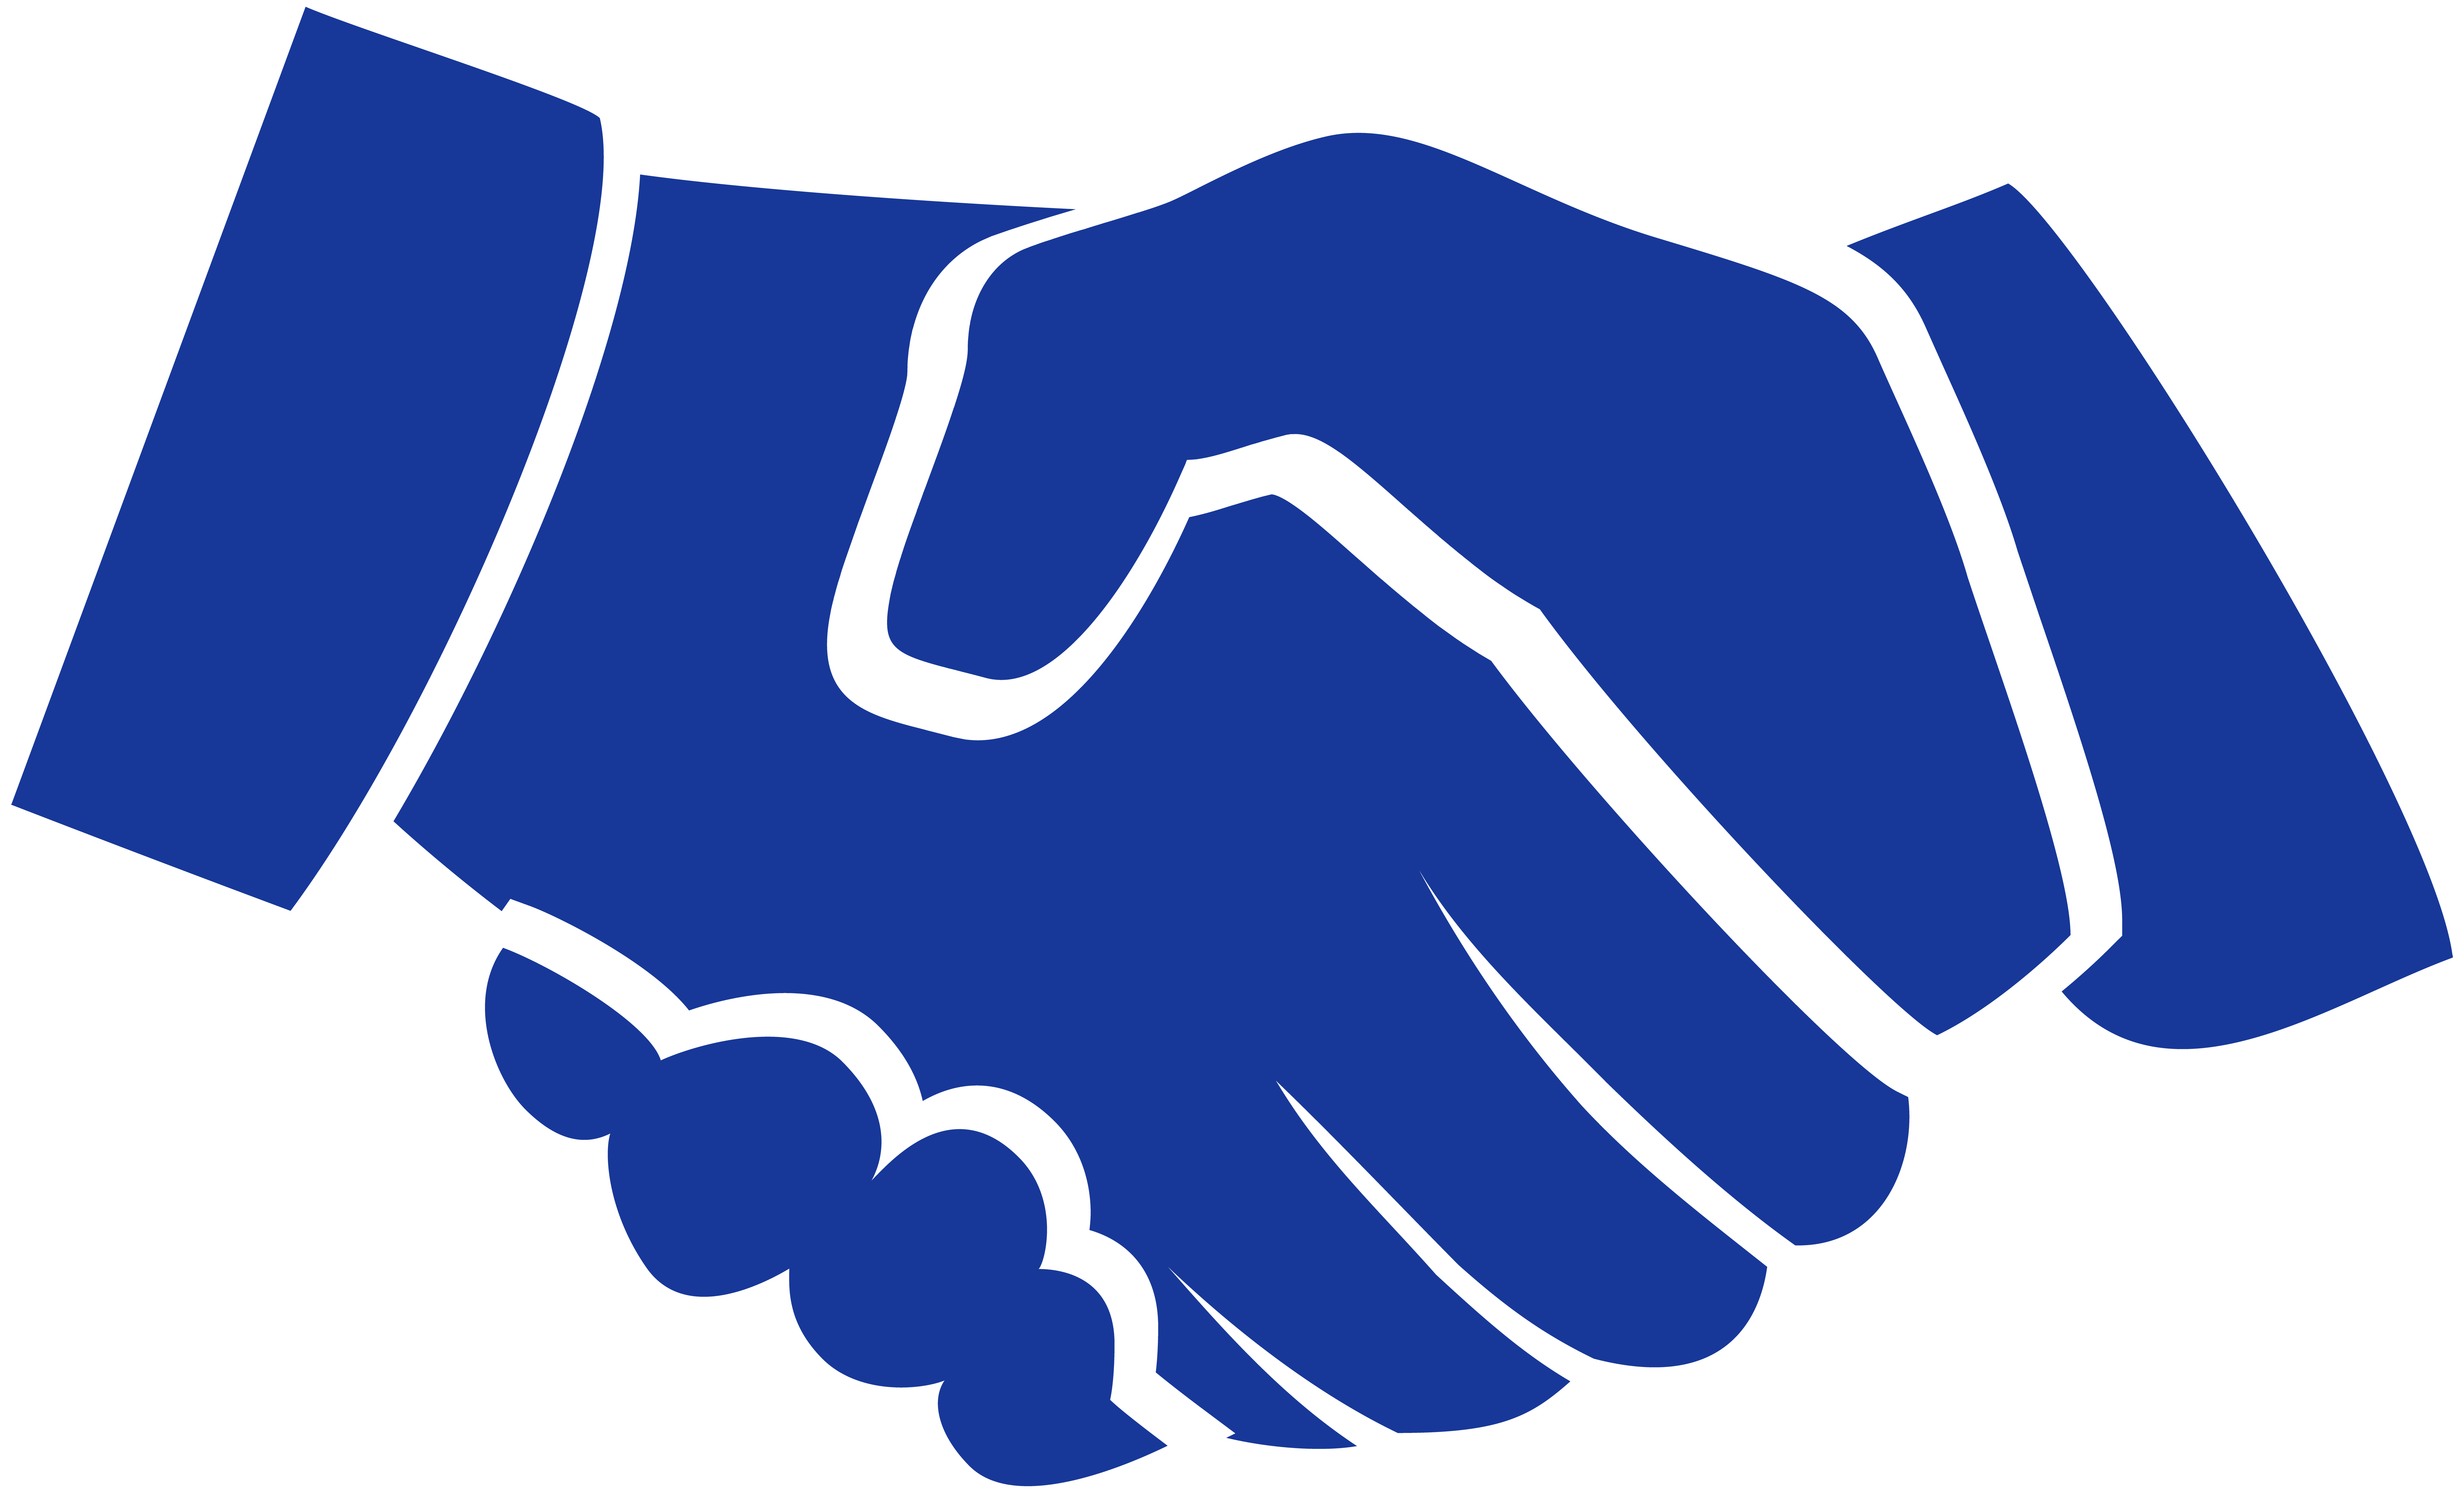 Handshake clipart animated.  collection of high